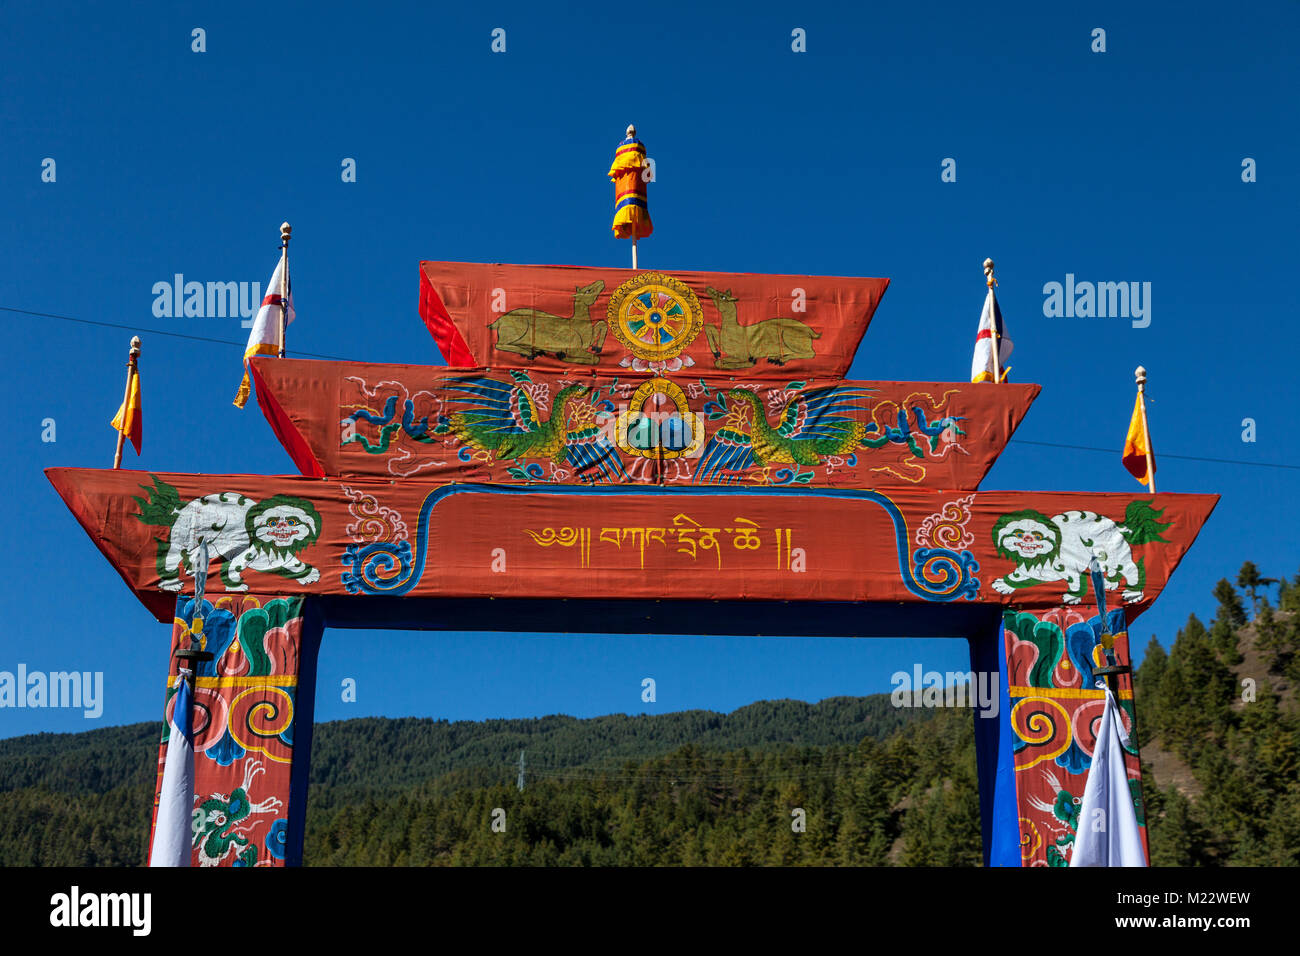 Prakhar Lhakhang, Bumthang, Bhutan.  Gateway Leading to the Monastery, Decorated for the King's Arrival. - Stock Image